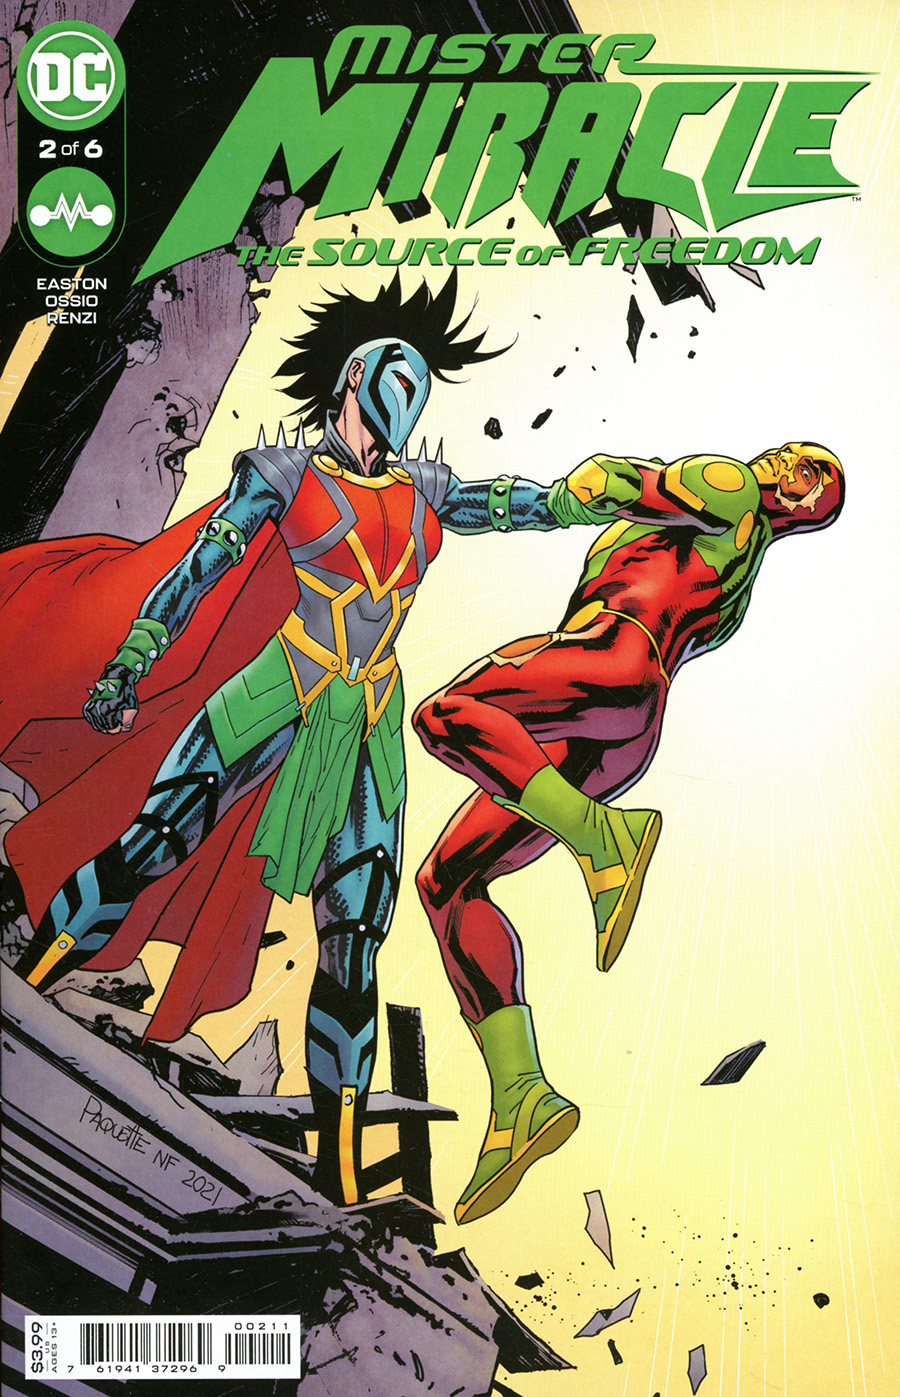 Mister Miracle The Source Of Freedom #2 Cover A Regular Yanick Paquette Cover